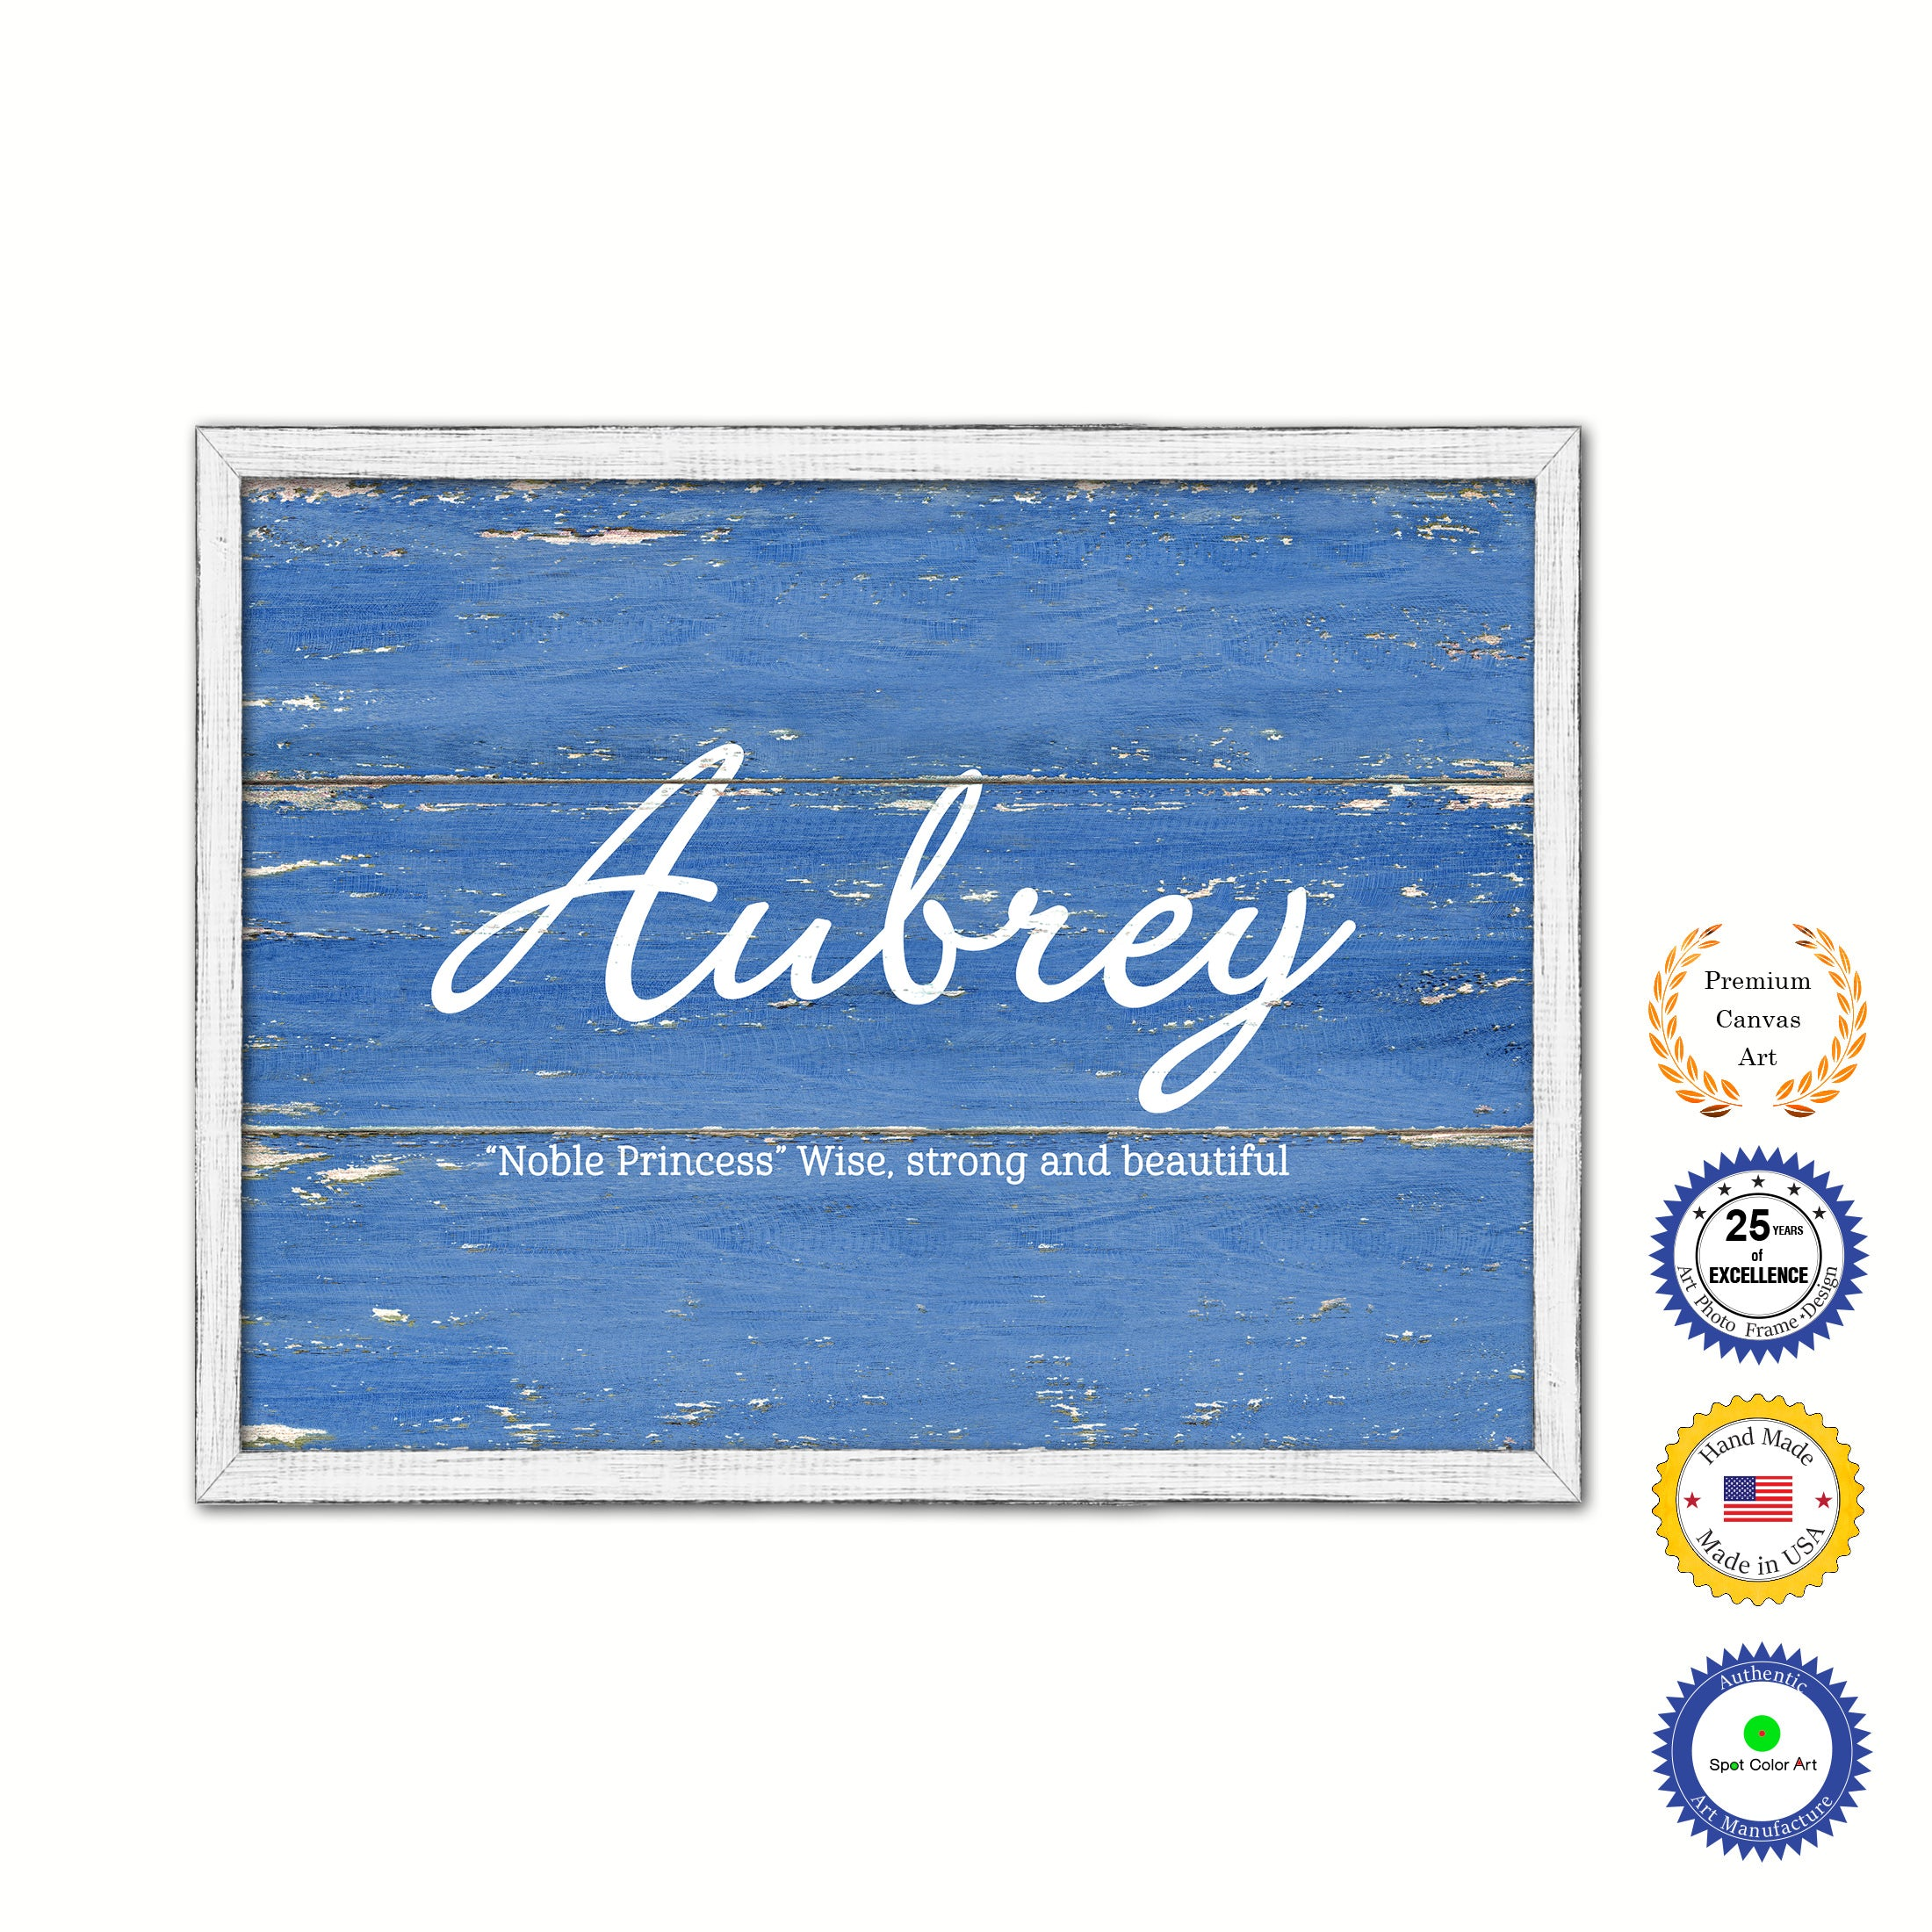 Aubrey Name Plate White Wash Wood Frame Canvas Print Boutique Cottage Decor Shabby Chic